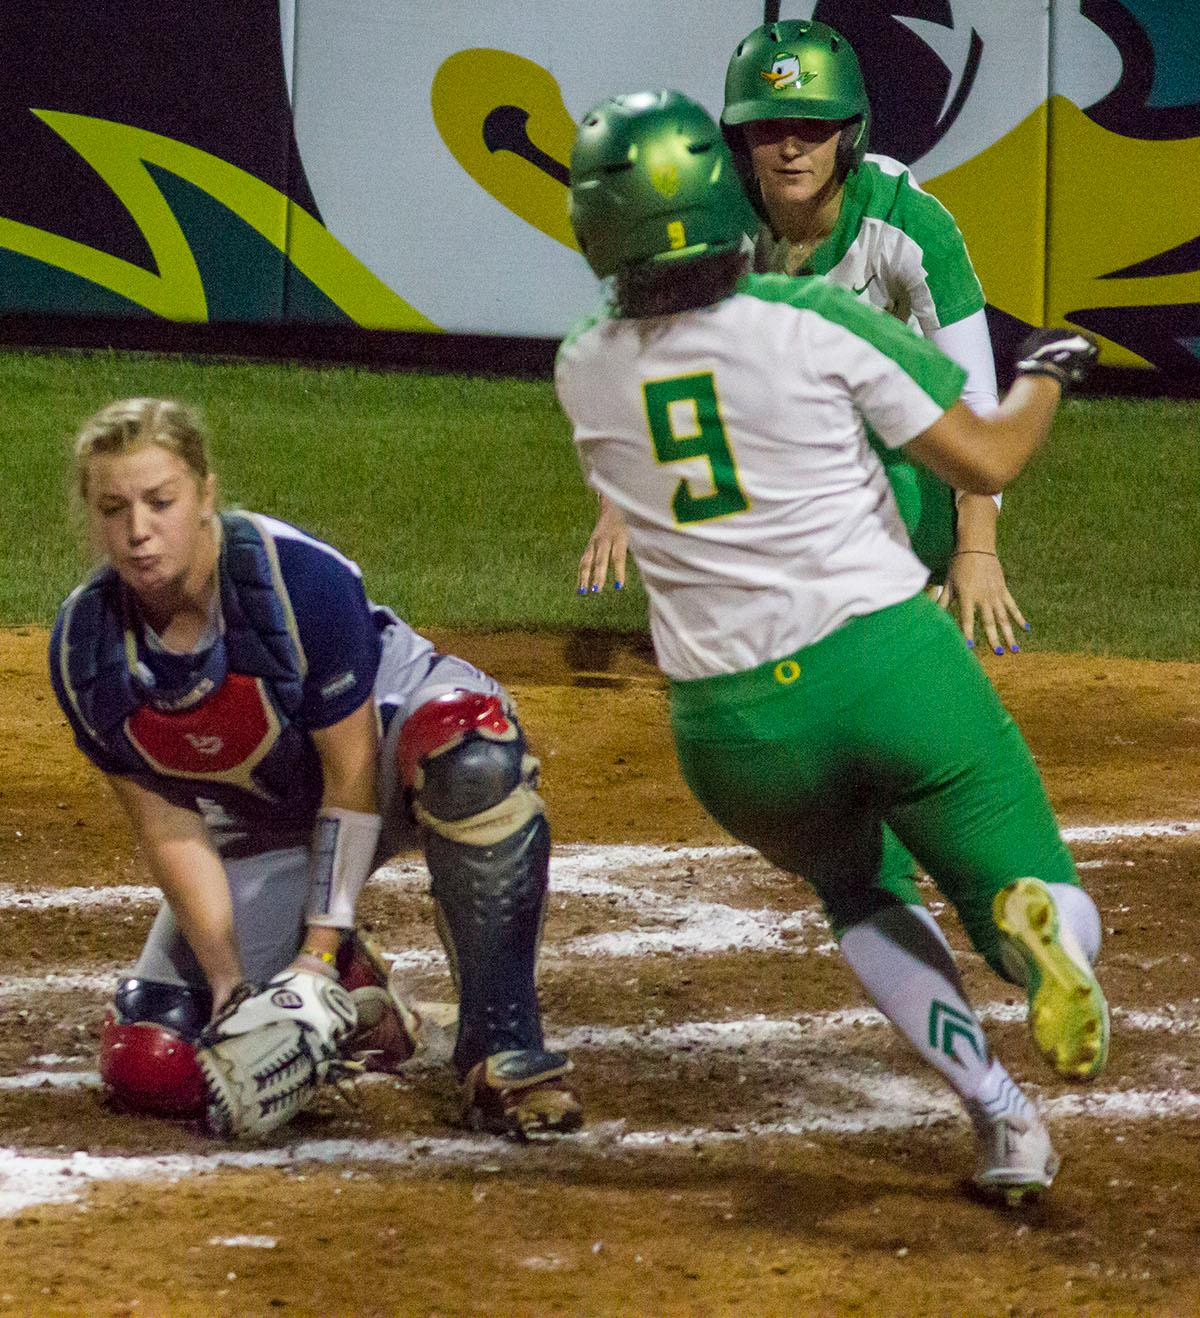 Ducks center-fielder Shannon Rhodes (#9) scores as a teammate looks on. The No. 3 Oregon Ducks defeated the University of Illinois Chicago Flames 13-0 with the run-rule on Saturday night at Jane Sanders Stadium. The Ducks scored in every inning and then scored nine runs at the bottom of the fourth. The Oregon Ducks are now 22-0 in NCAA regional games. The Oregon Ducks play Wisconsin next on Saturday, May 20 at 2pm at Jane Sanders Stadium. Photo by Aaron Alter, Oregon News Lab